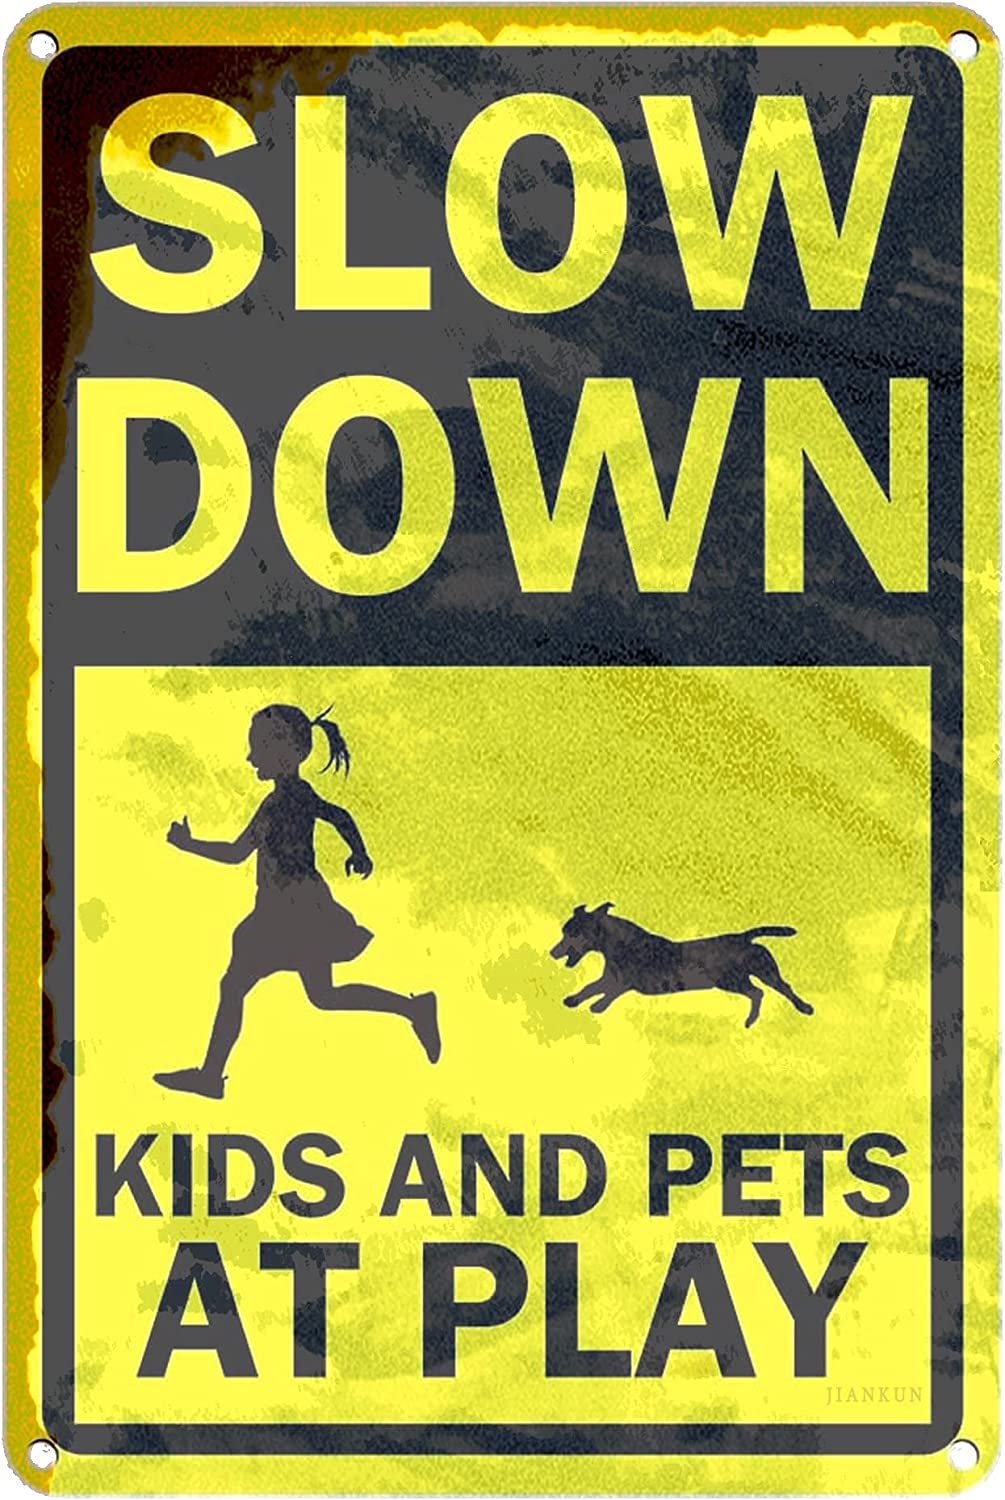 J.DXHYA Man Cave Decor 2 Pieces Oakland Mall Slow Play Kids OFFicial store X Down 8 at Sign